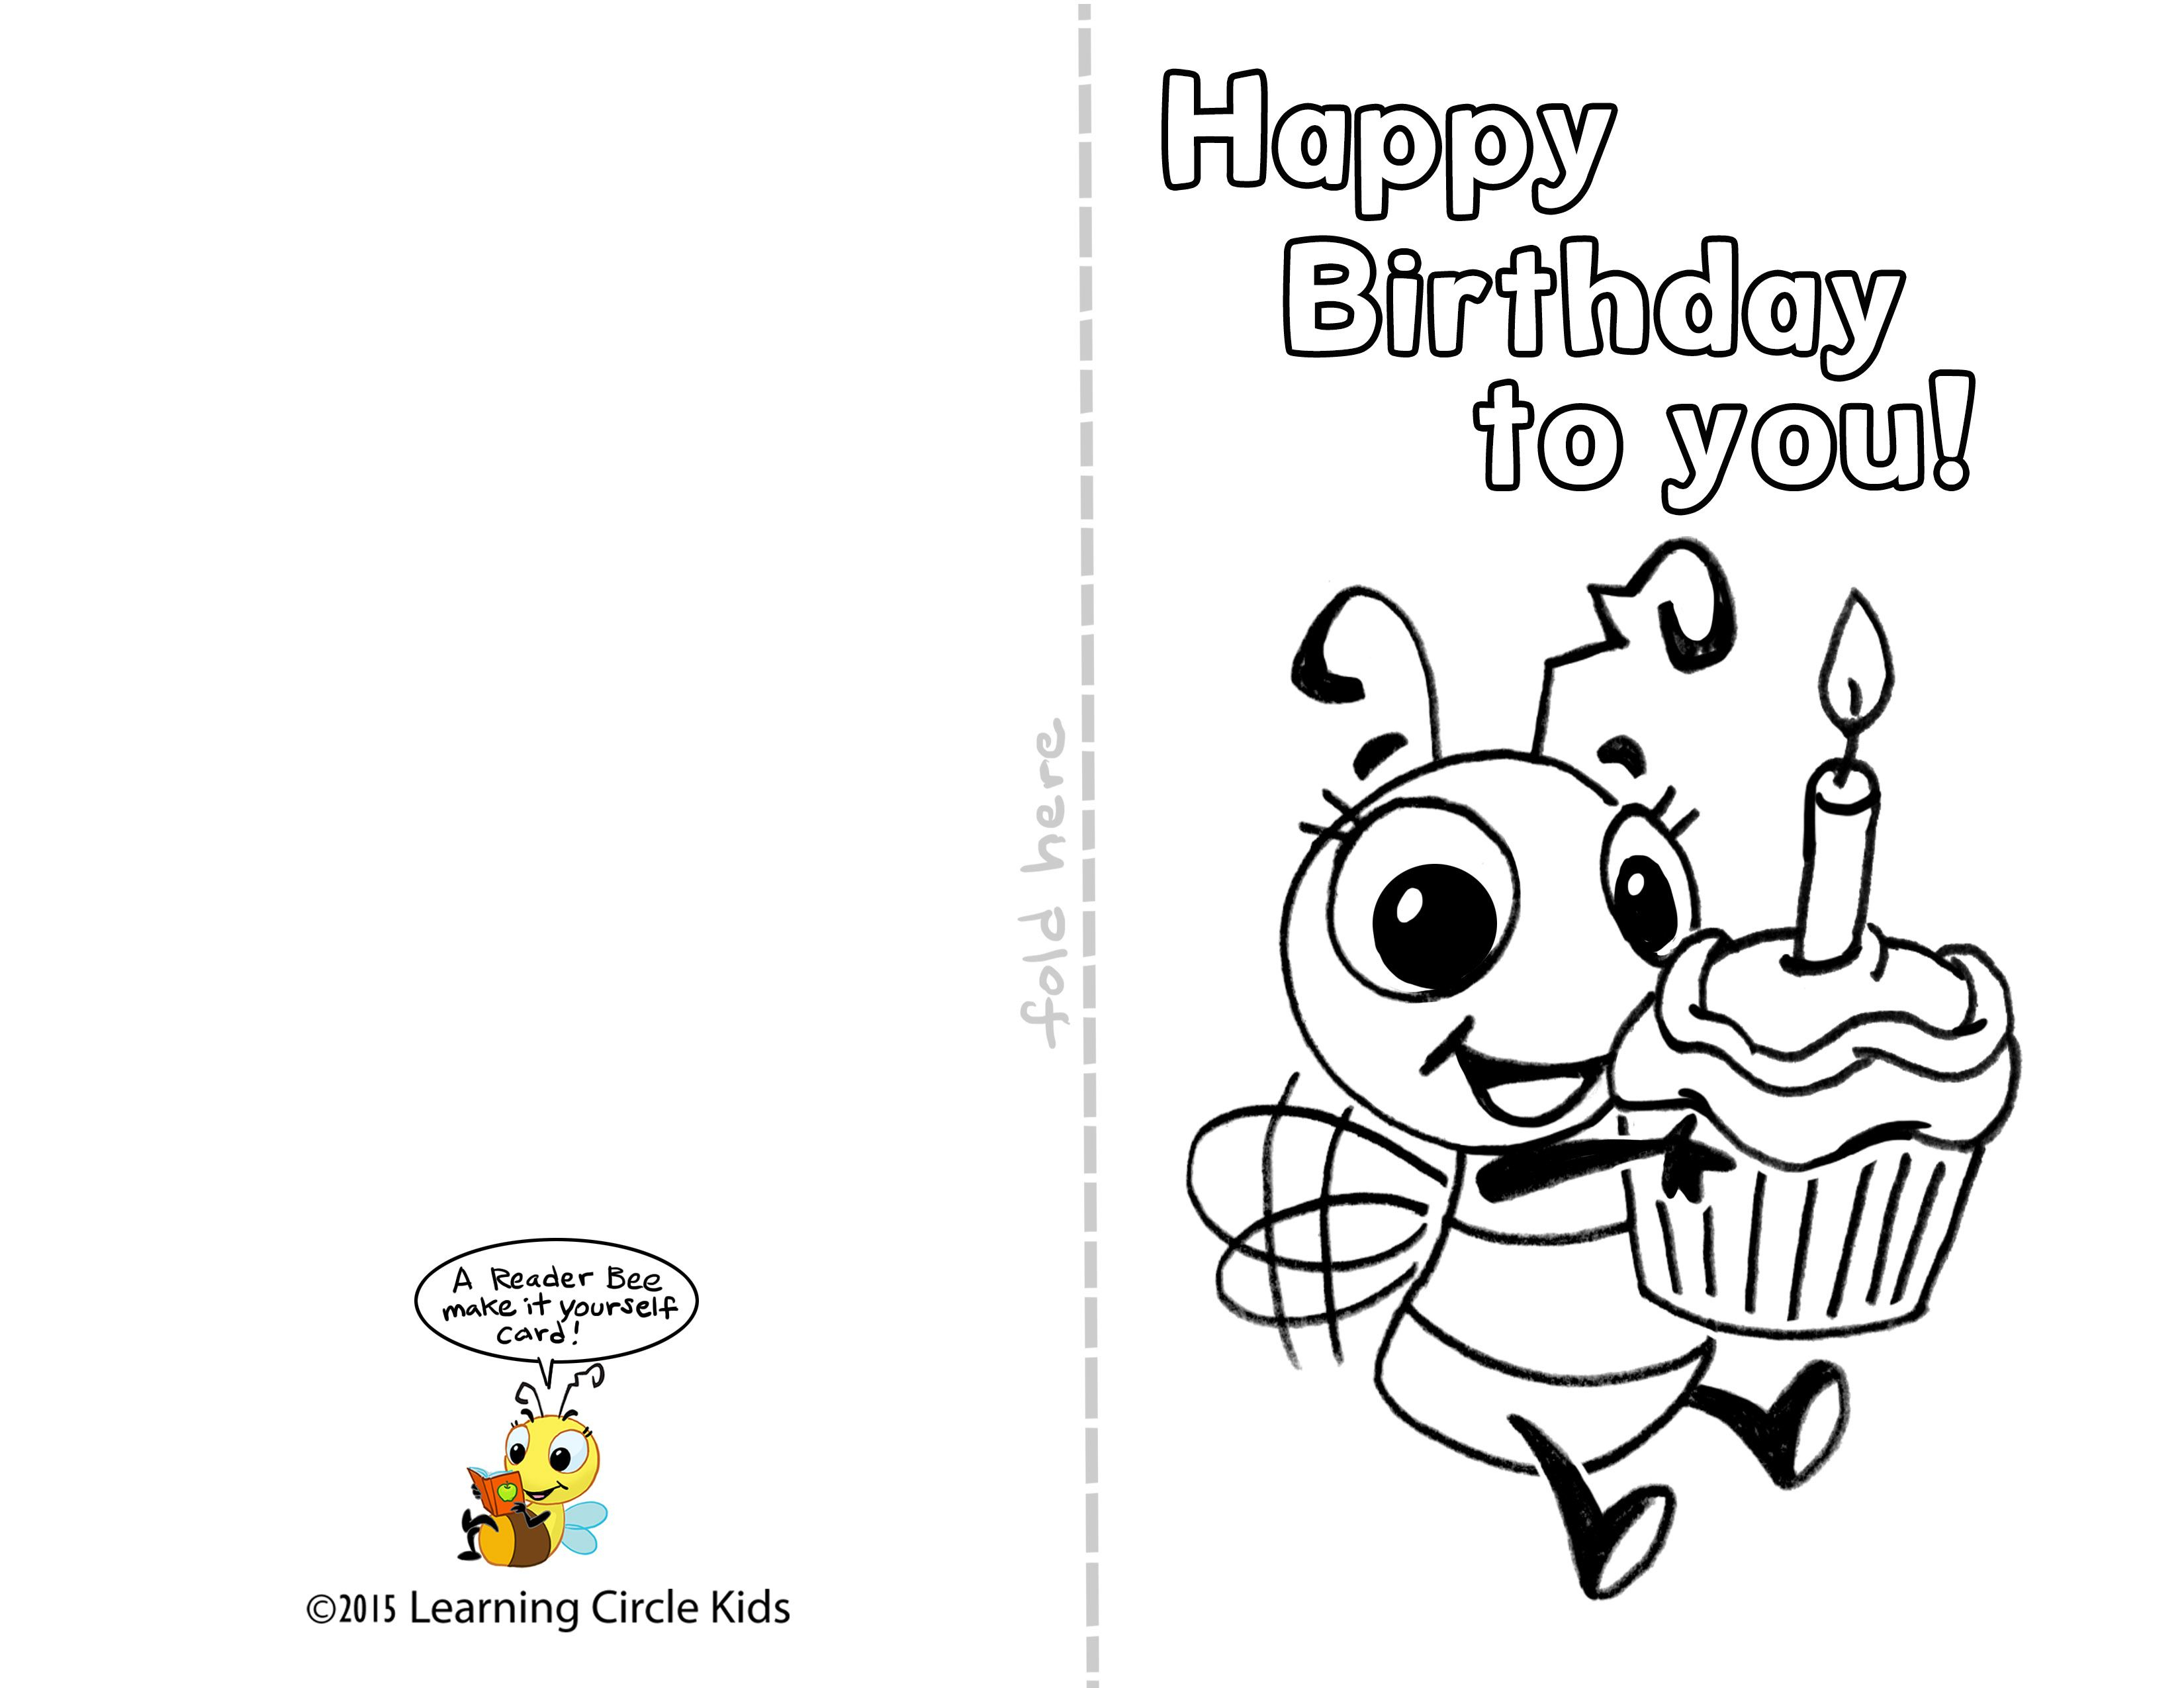 Pinreader Bee On Birthday Celebration - Bee Style | Pinterest - Free Printable Birthday Cards For Mom From Son